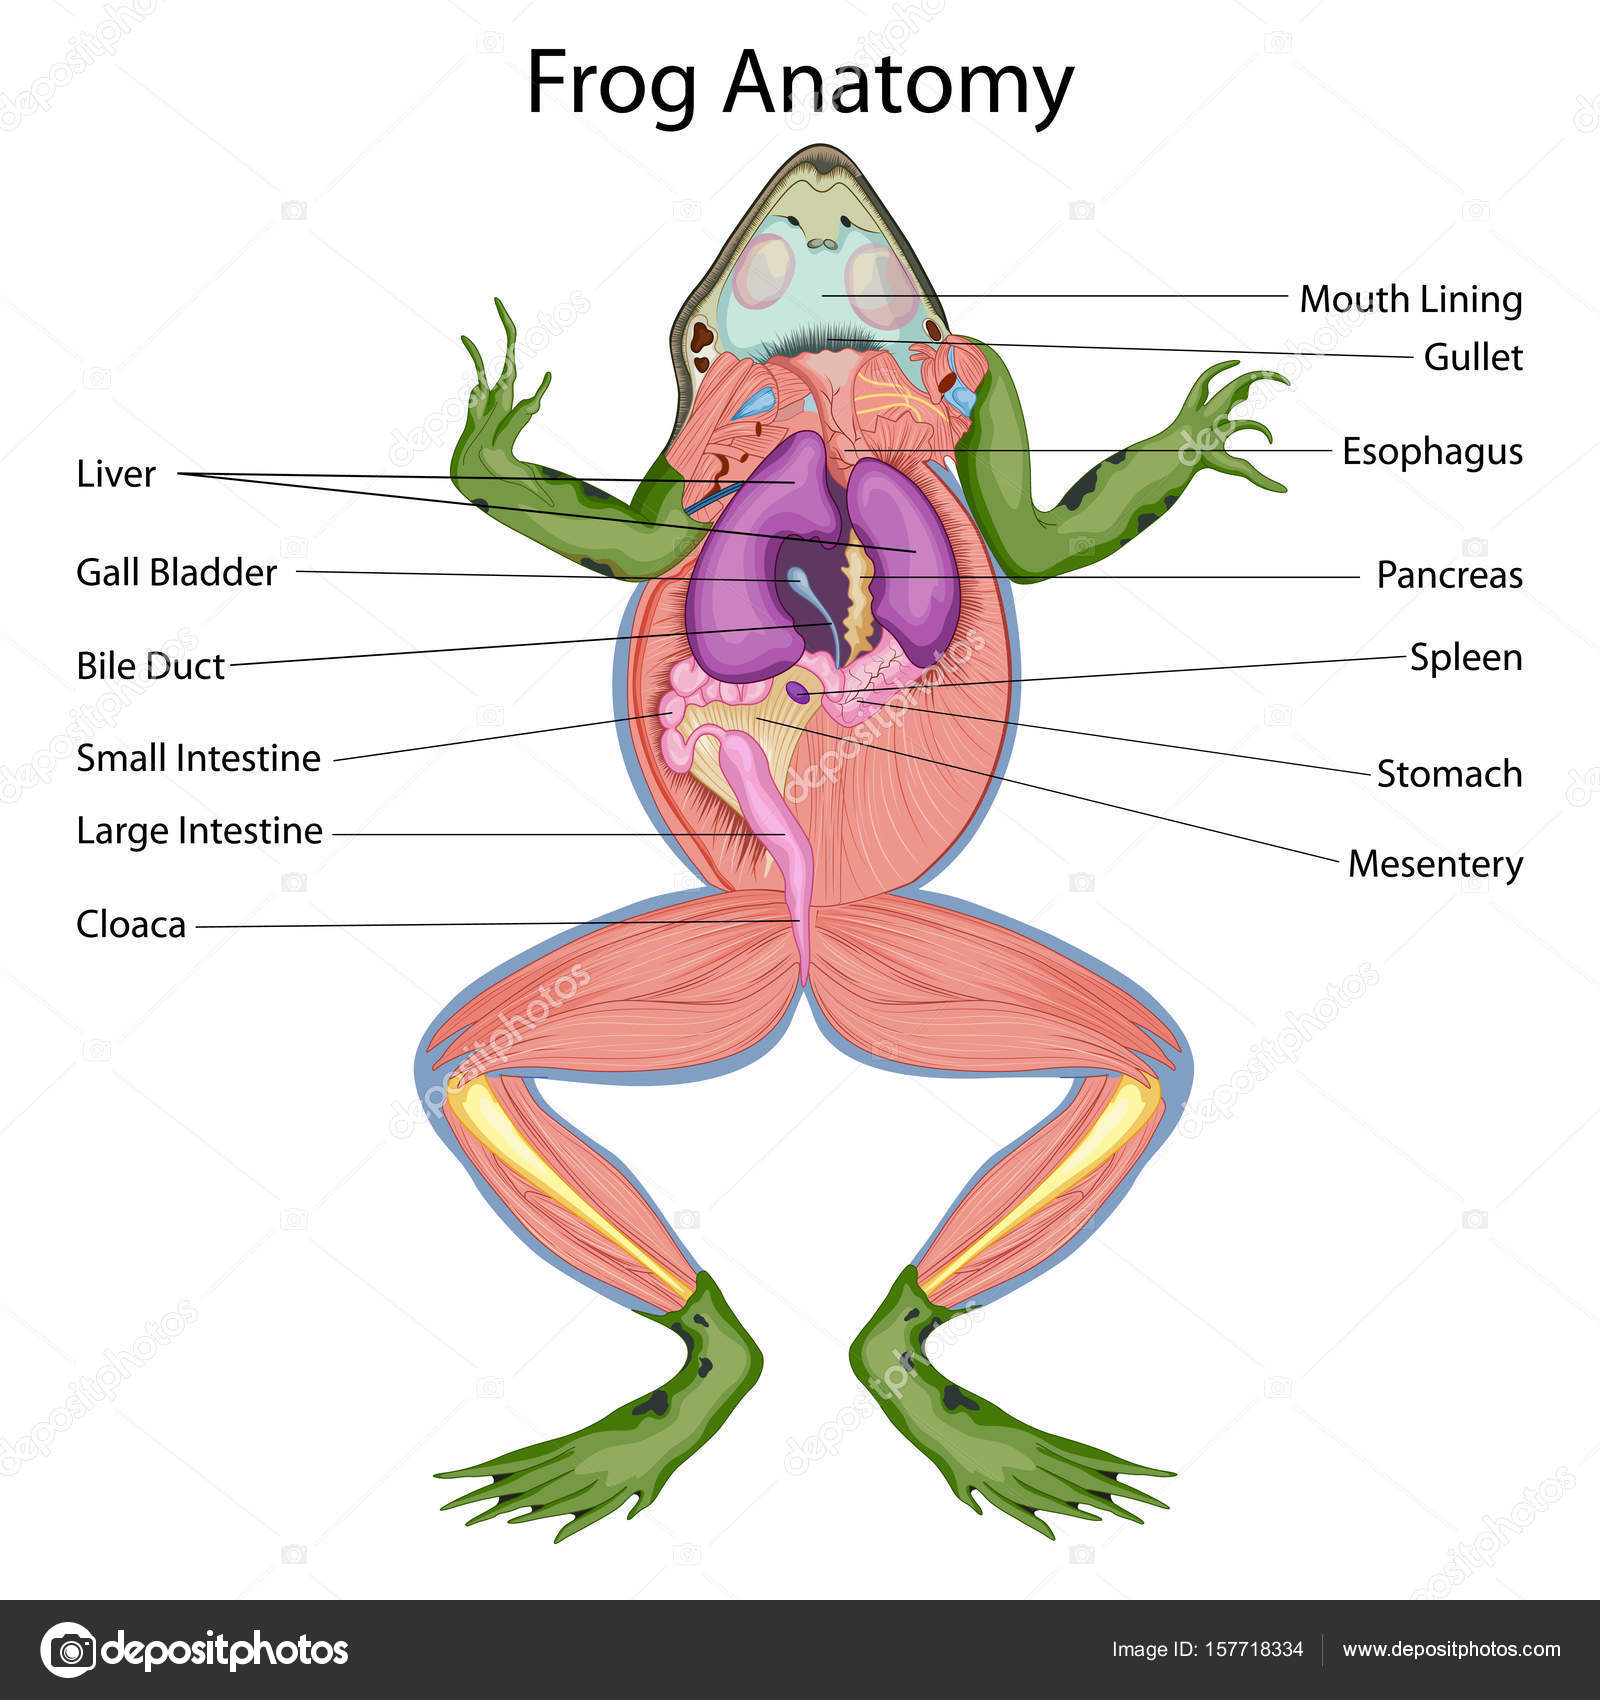 Education Chart of Biology for Dissected body of Frog Diagram ...